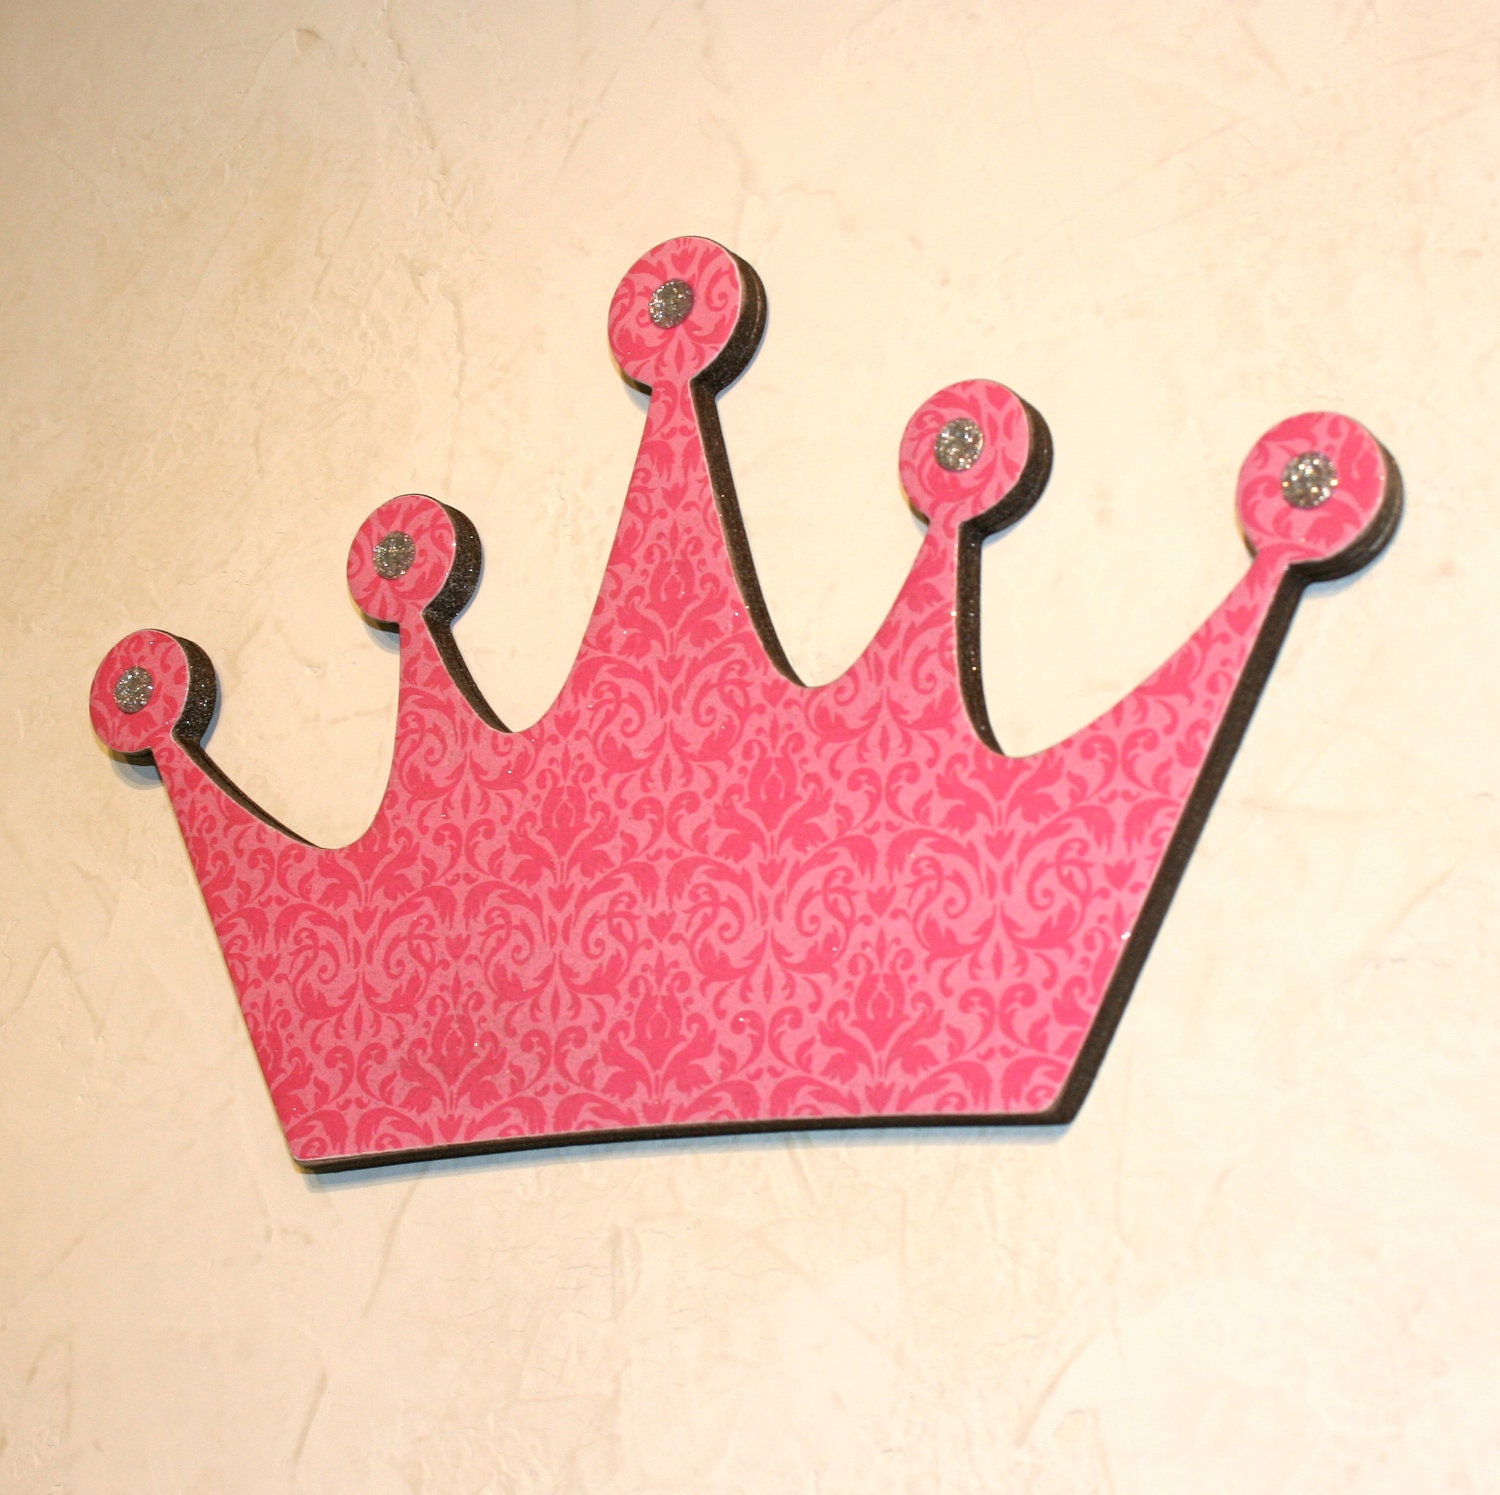 Crown Decoration For Wall : Princess crown wall decor pink by